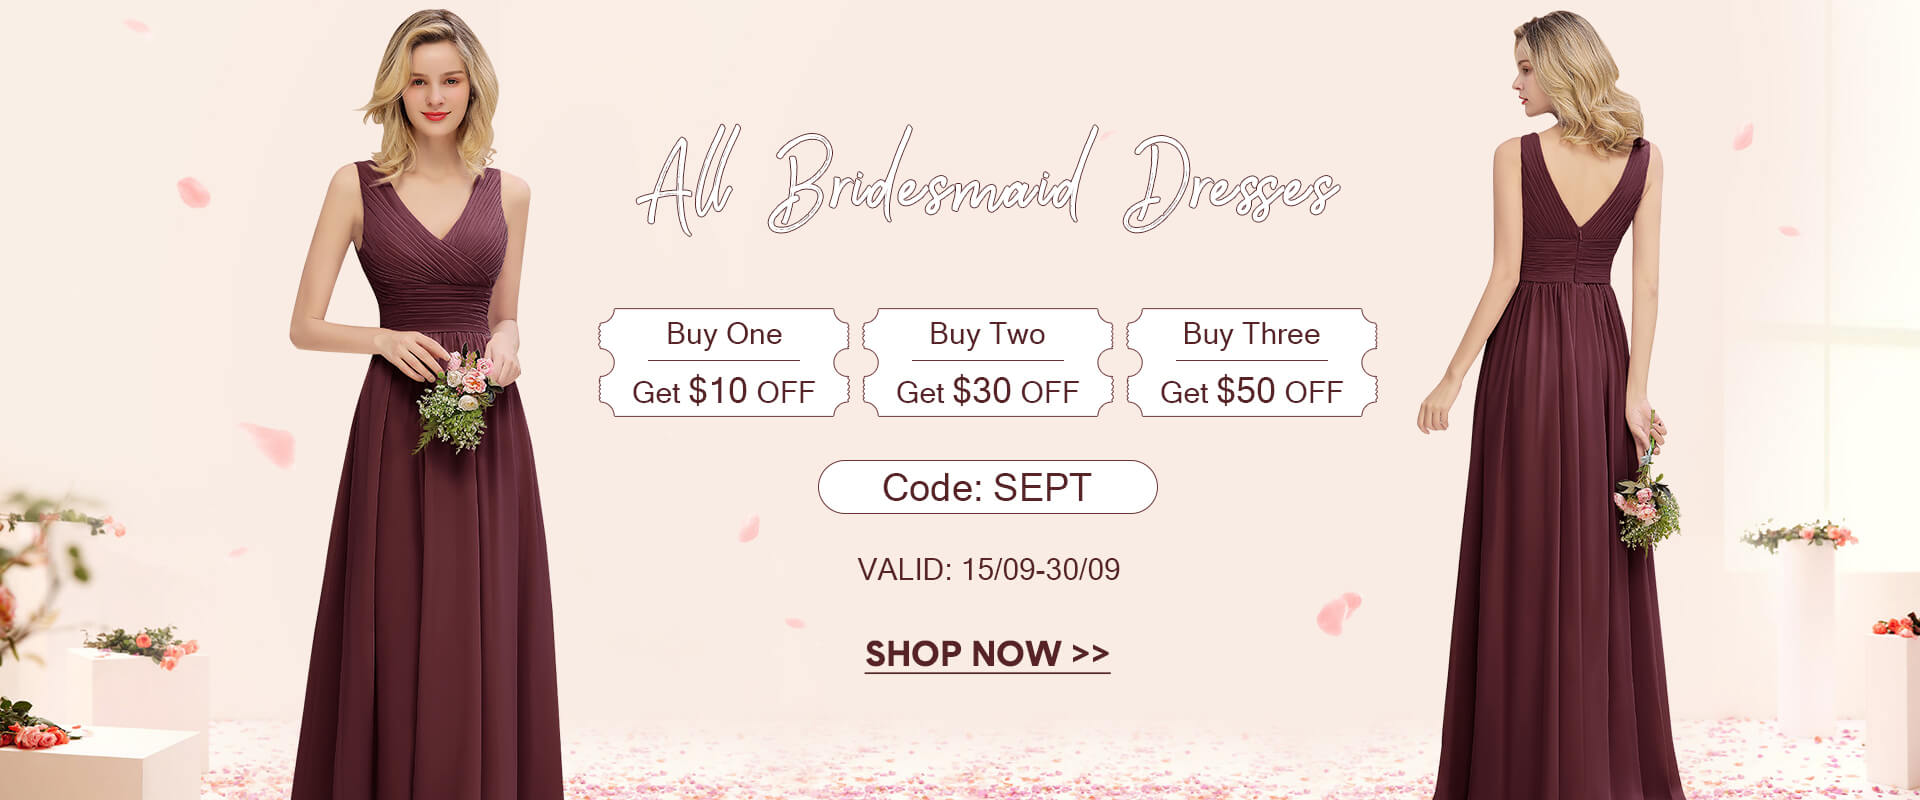 bridesmaid dresses, buy 3 get $50 OFF